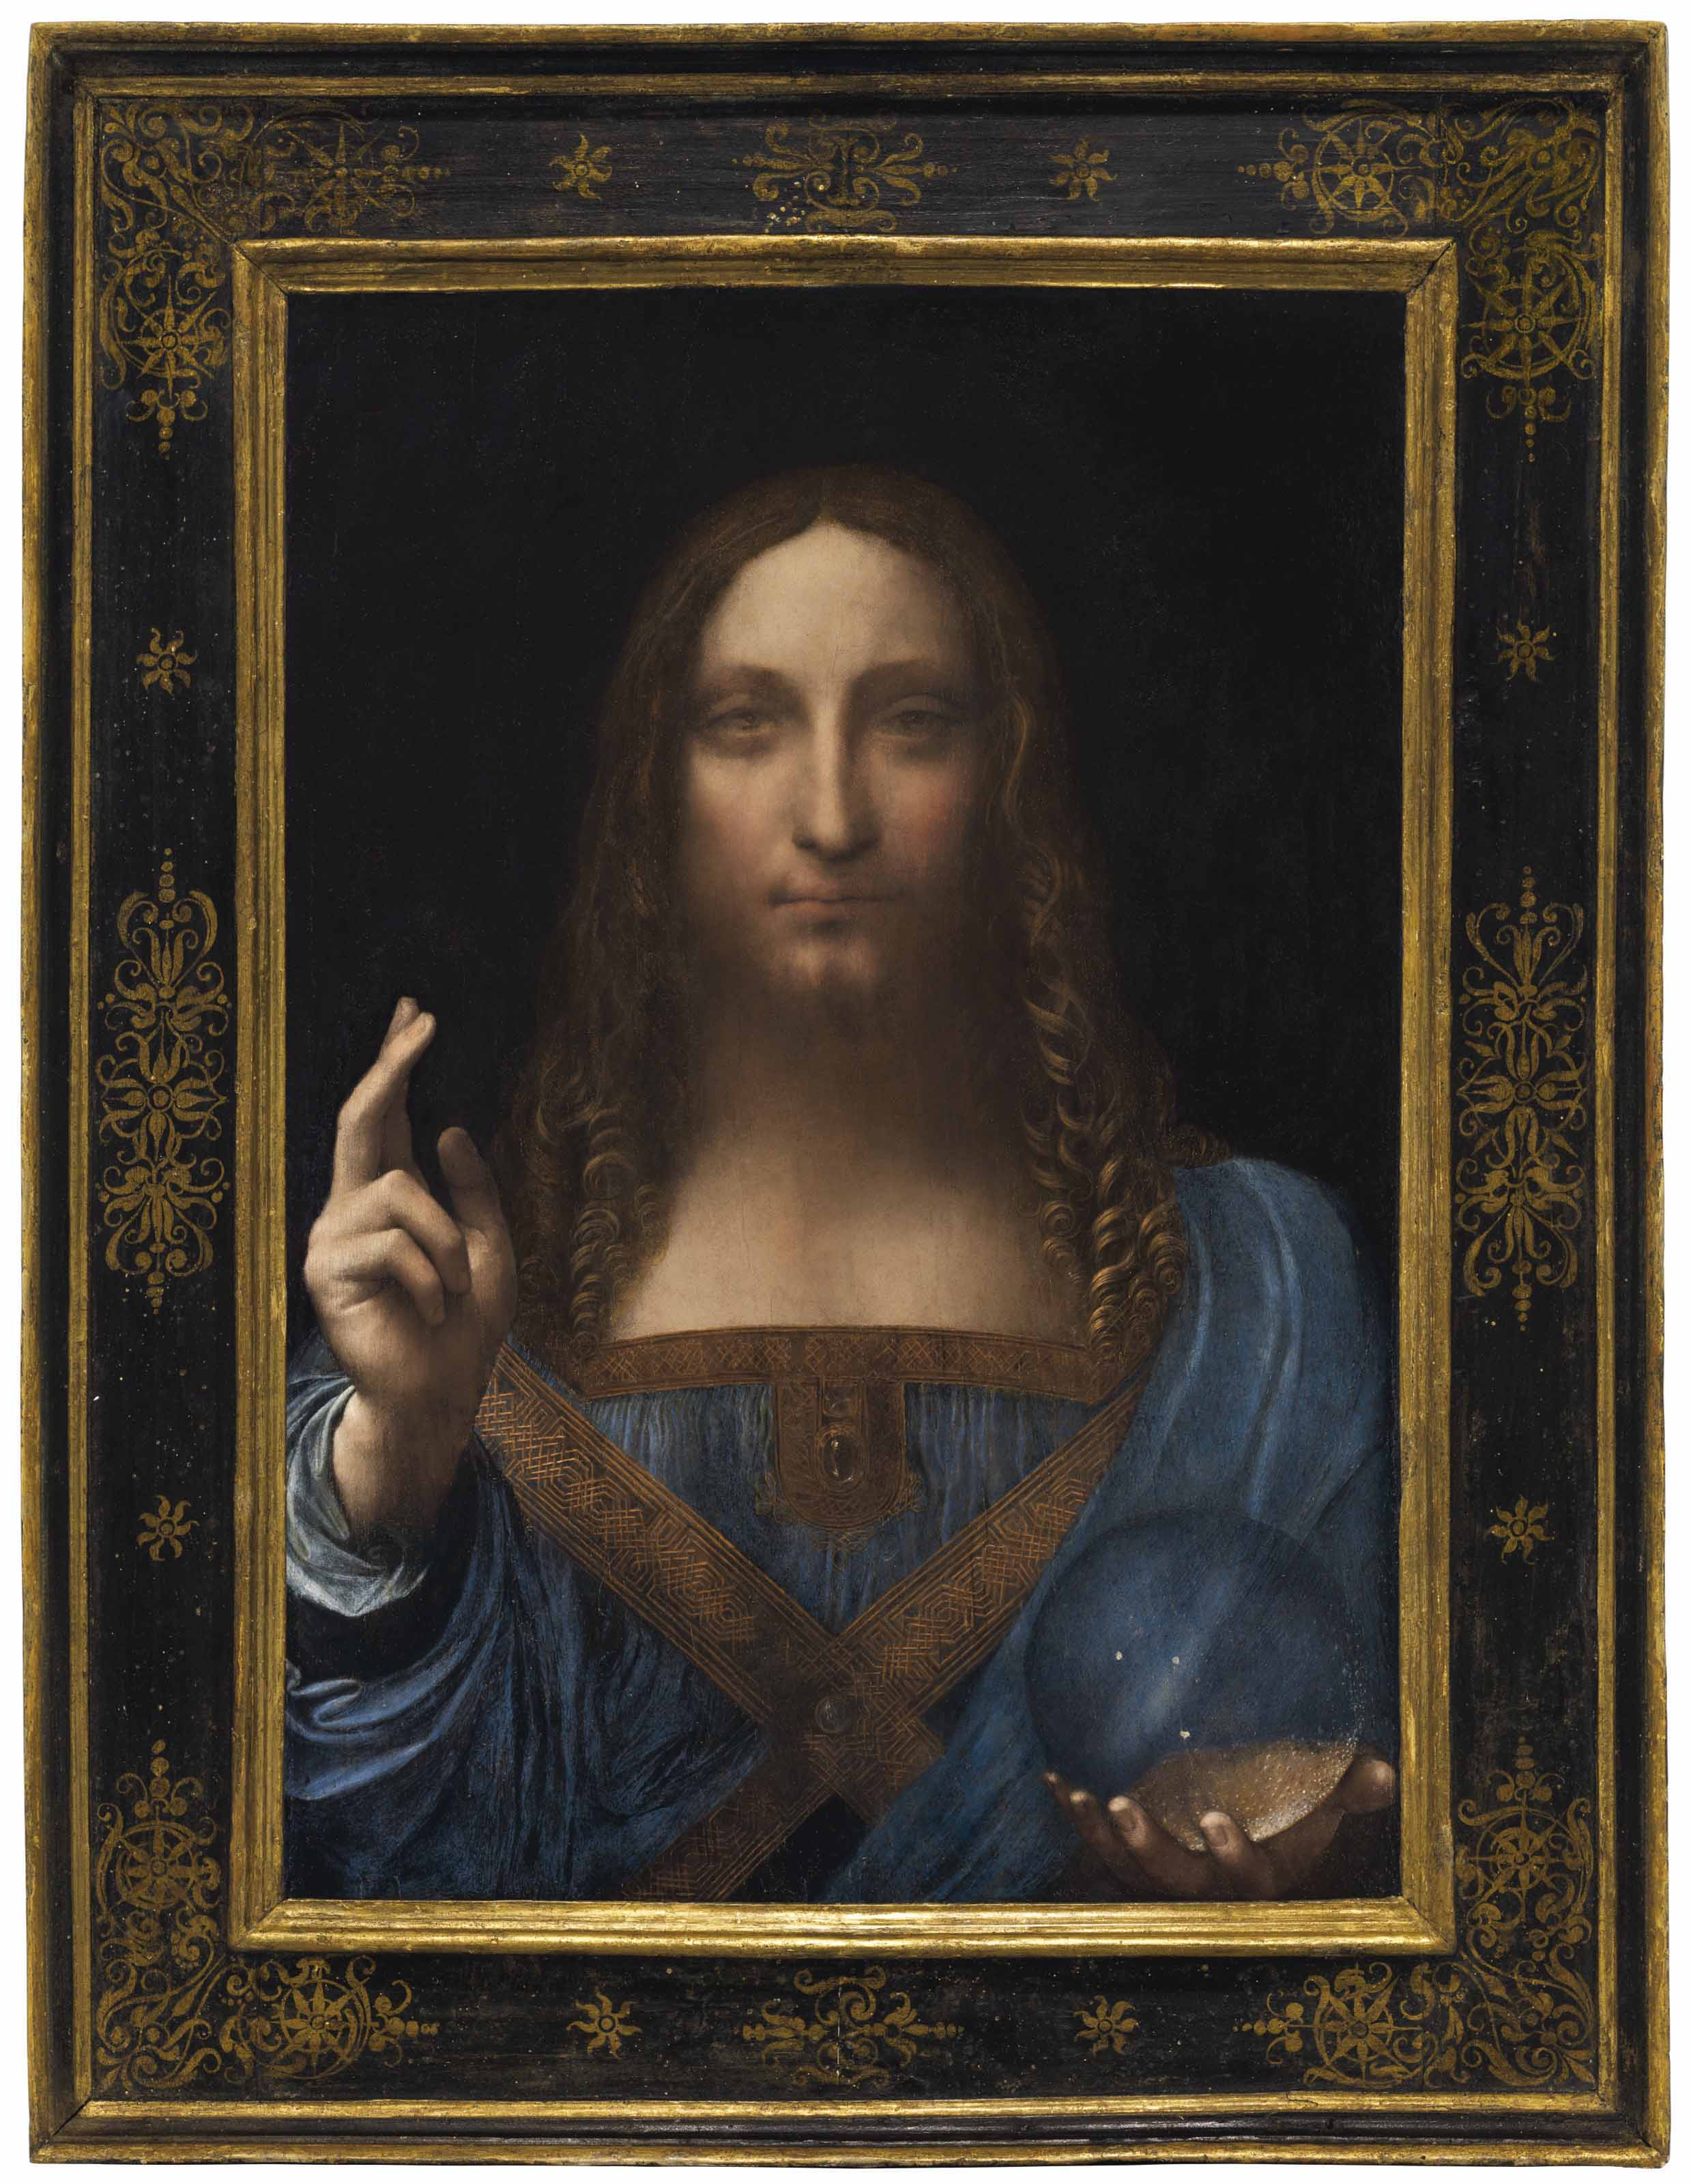 Salvator Mundi Leonardo Da Vinci Hd >> Leonardo Da Vinci 1452 1519 Salvator Mundi Paintings Italy